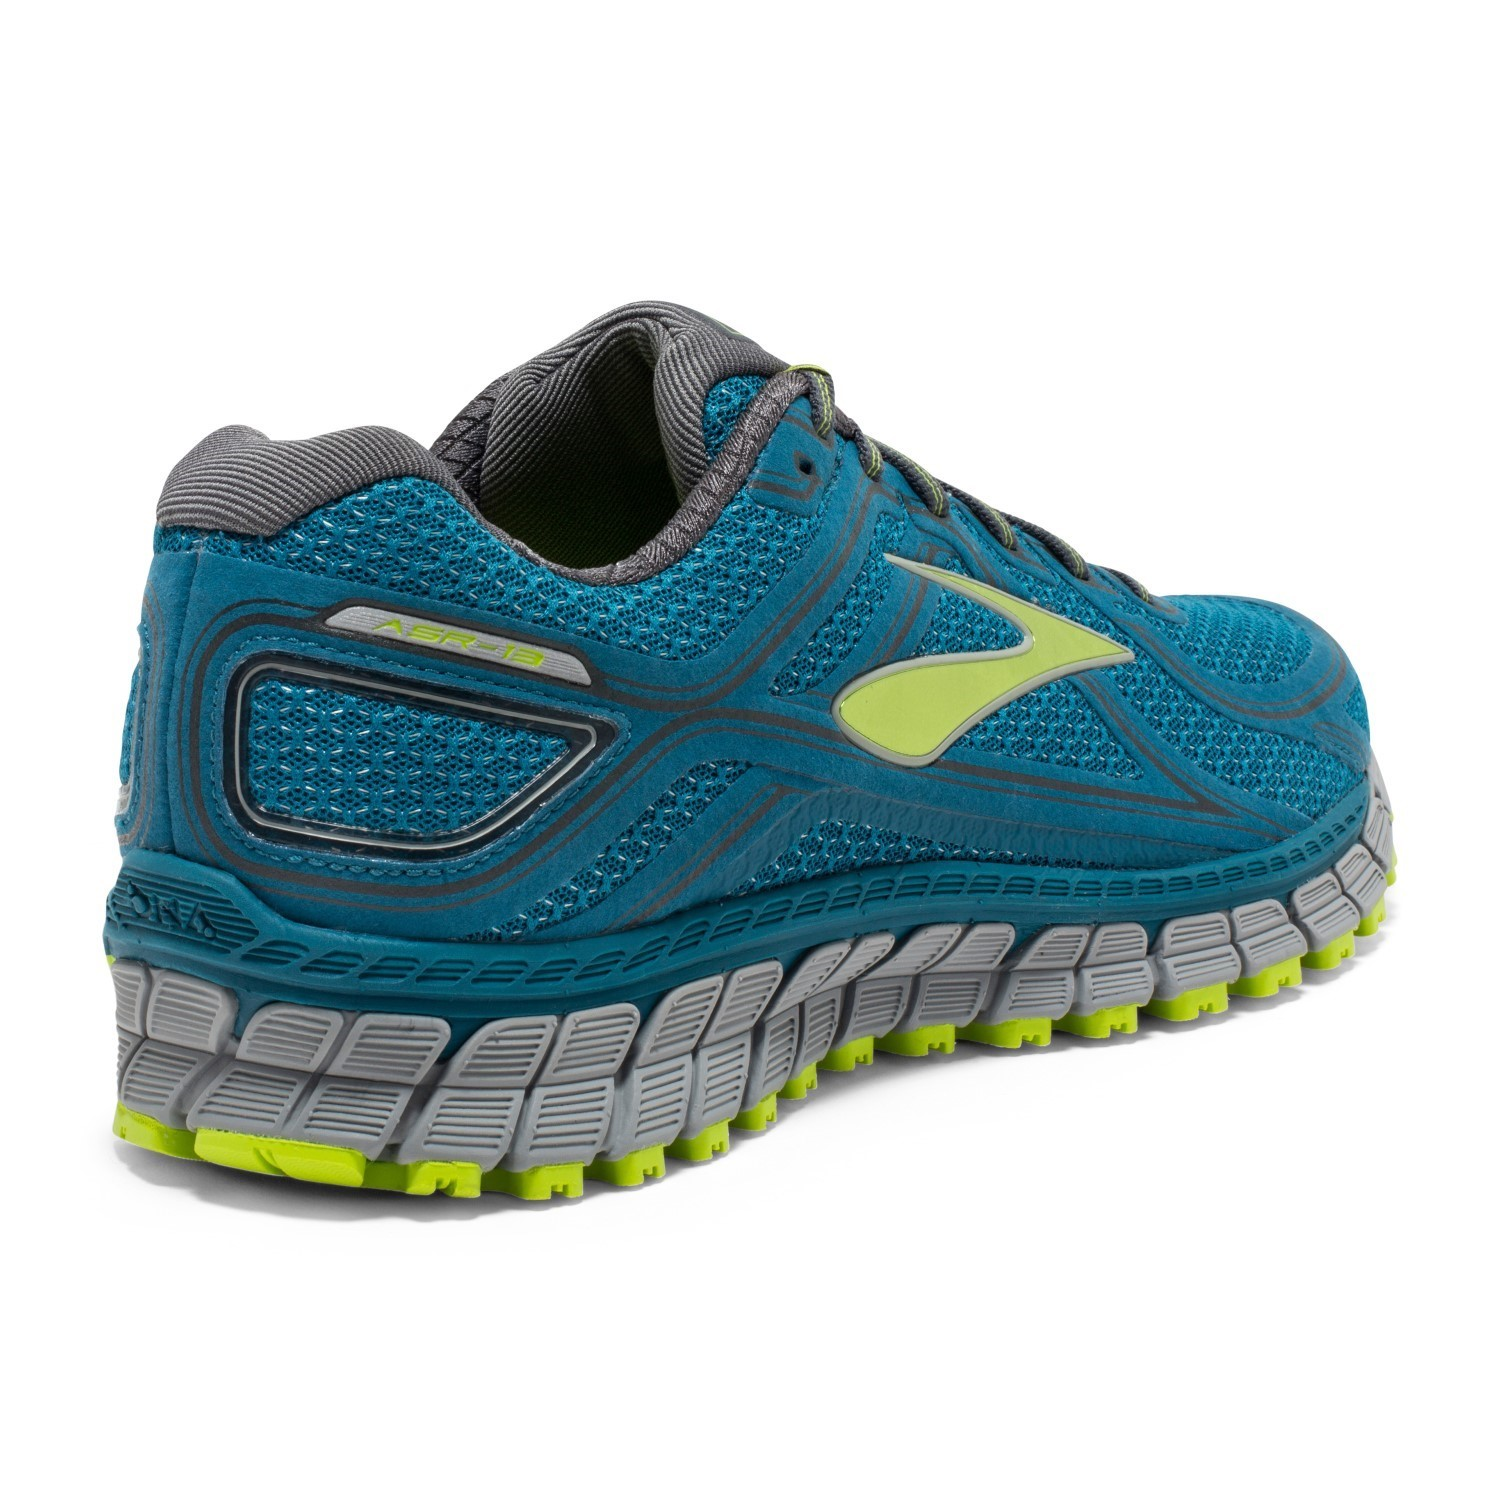 1954da23573 Brooks Adrenaline ASR 13 - Mens Trail Running Shoes - Blue Lime  Punch Anthracite